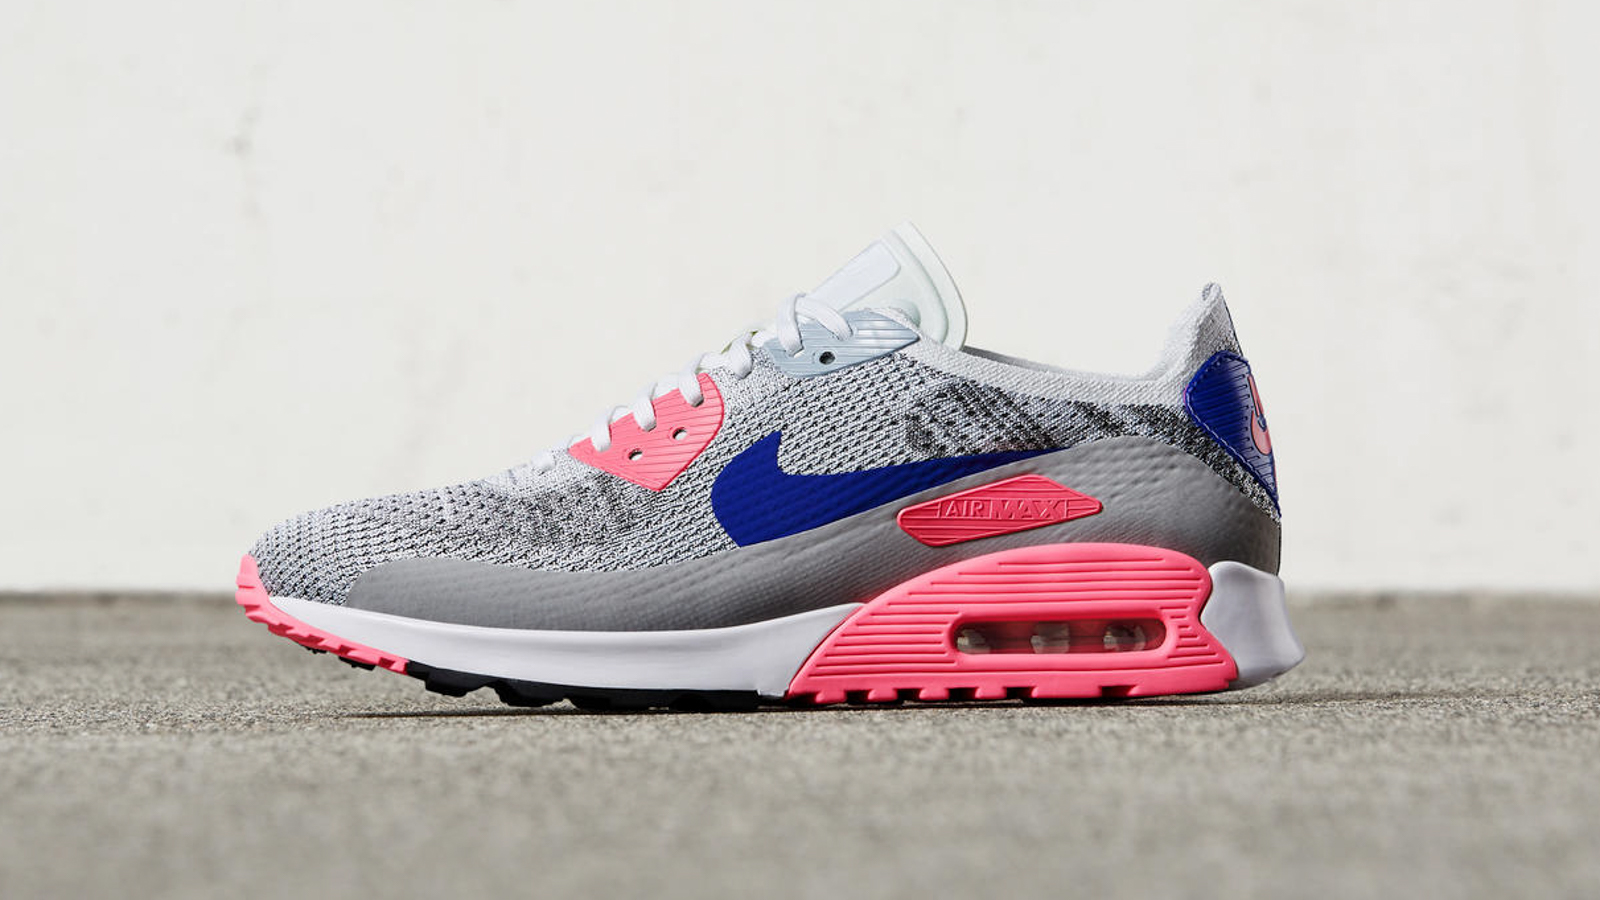 eee7b52f6bb5 The Nike Air Max 90 Flyknit will be available online and in size  stores on  Thursday 2nd March